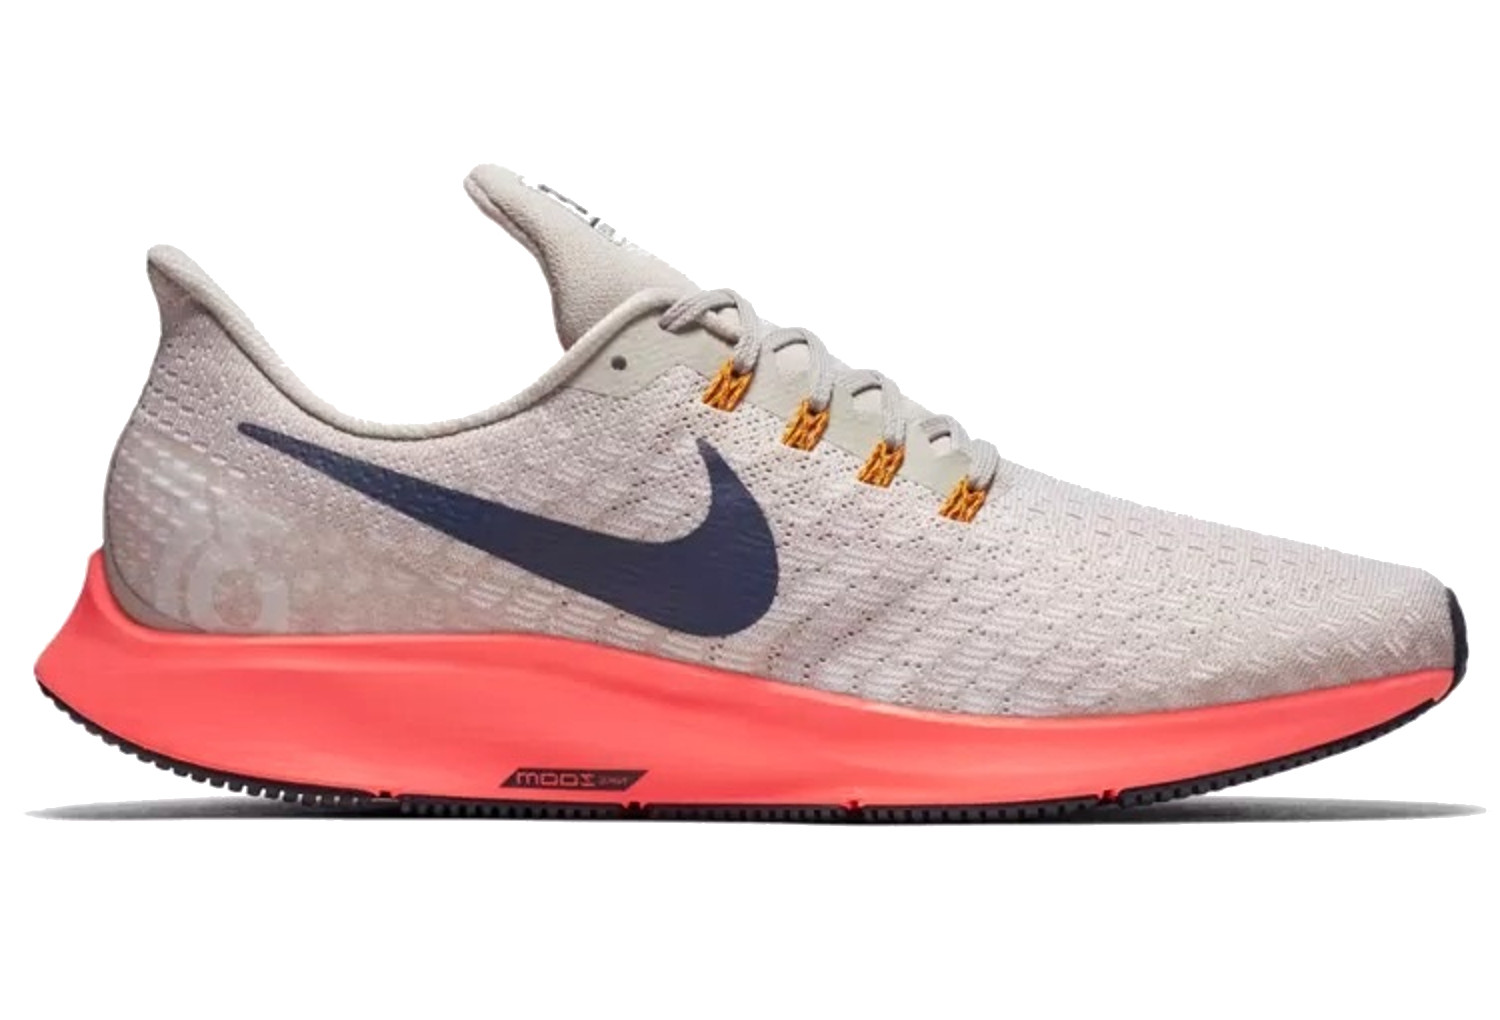 e1566f186841 Nike Air Zoom Pegasus 35 Shoes Beige Blue Pink Men